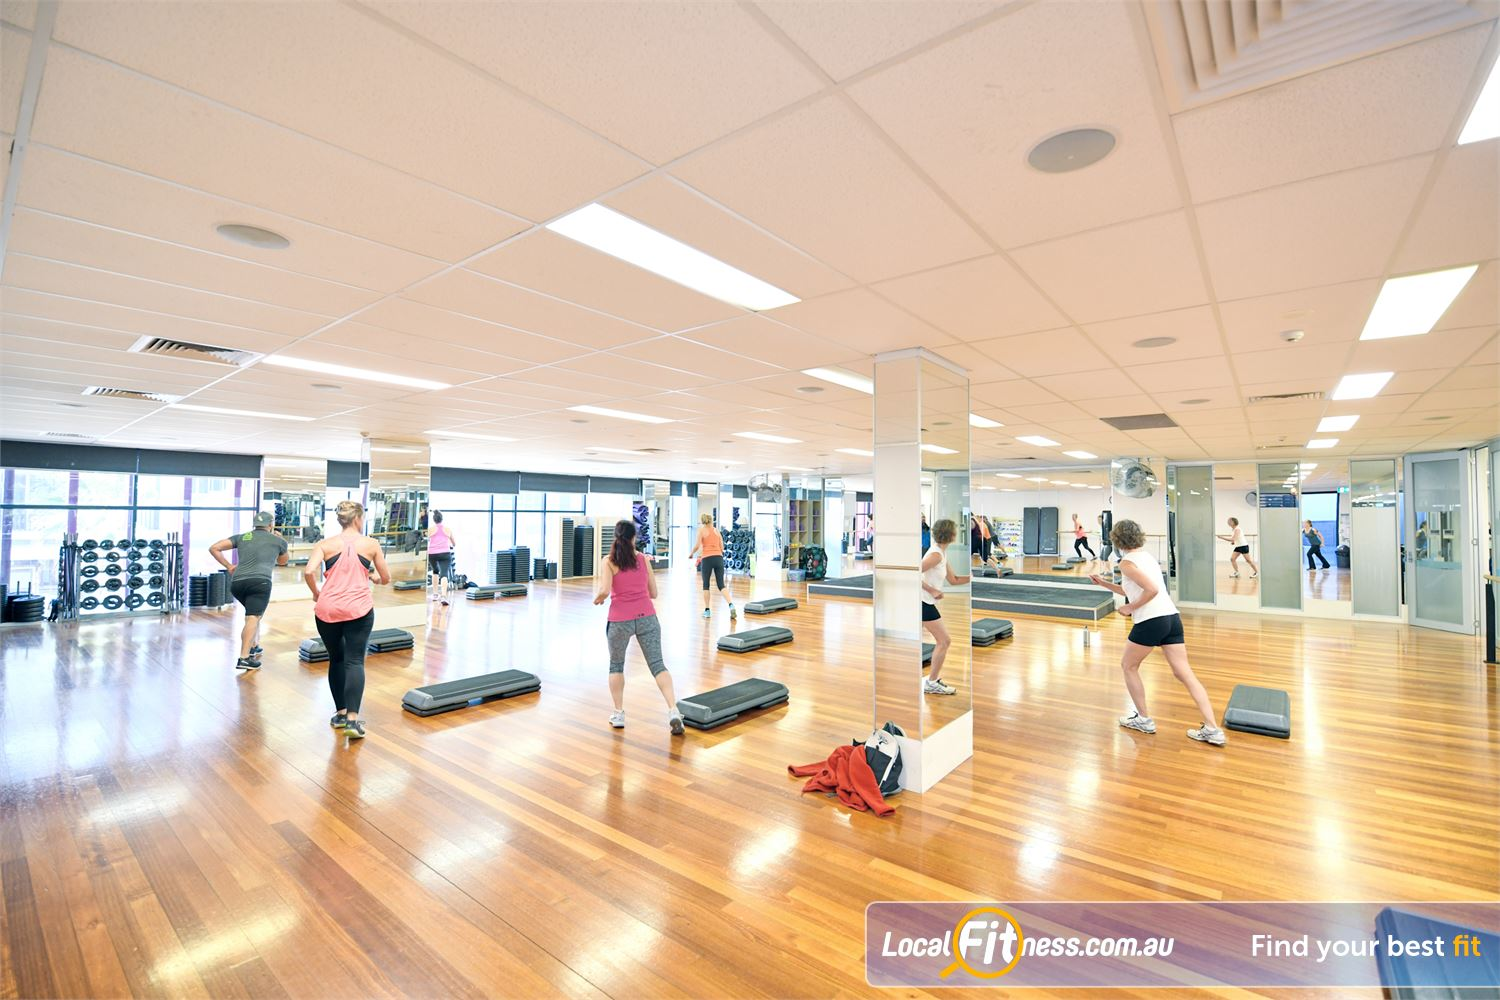 Goodlife Health Clubs Near Bulla Over 55 group fitness classes per week inc. Port Melbourne Zumba.